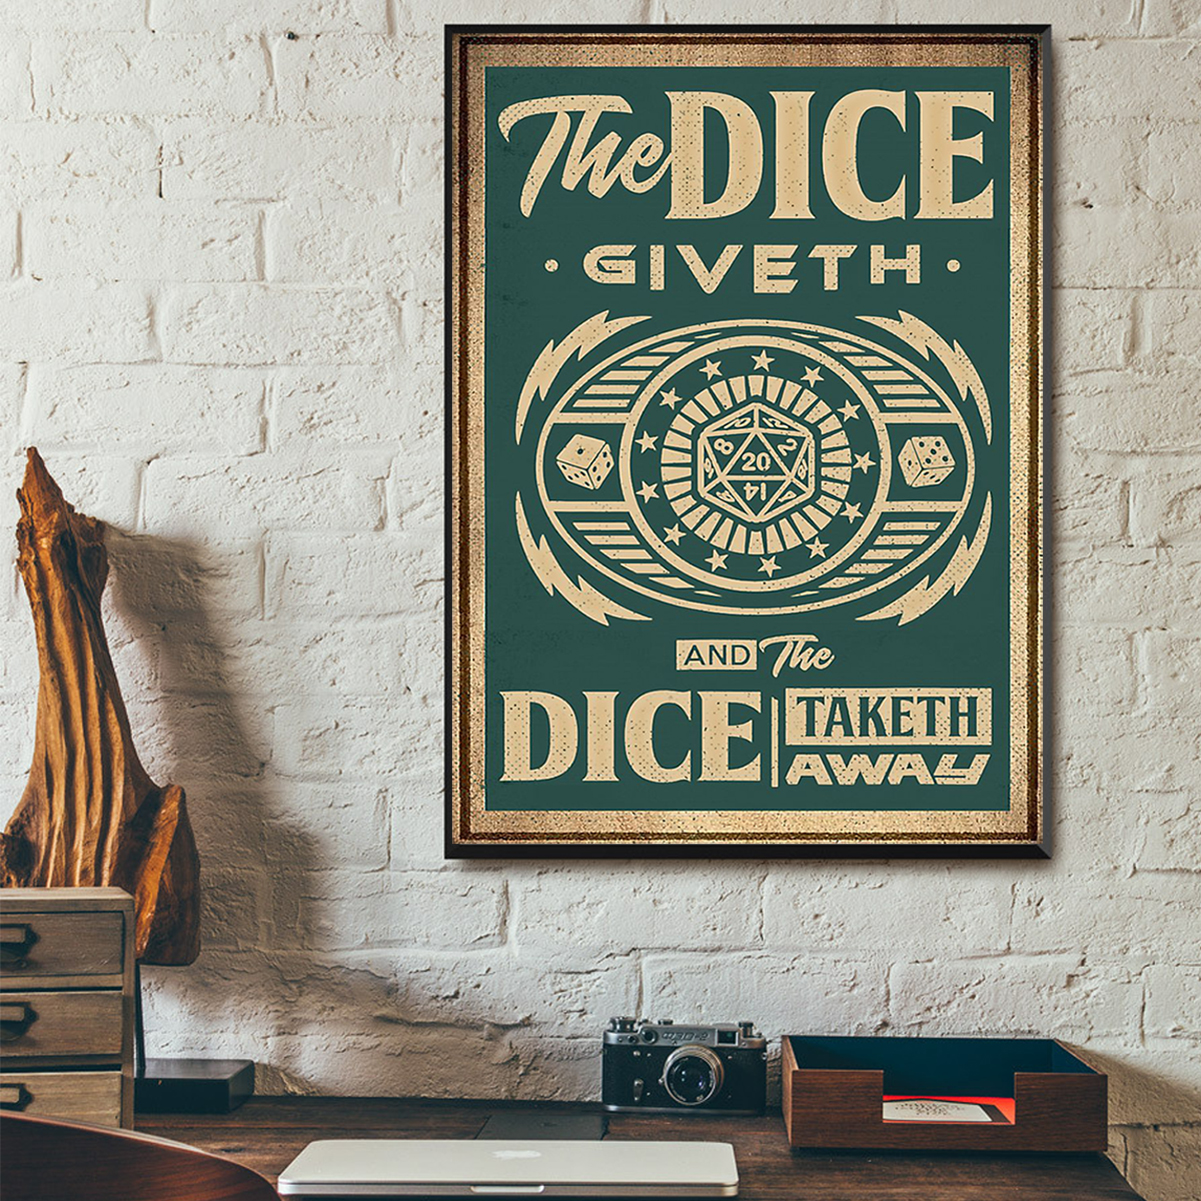 The dice giveth and the dice taketh away poster A1